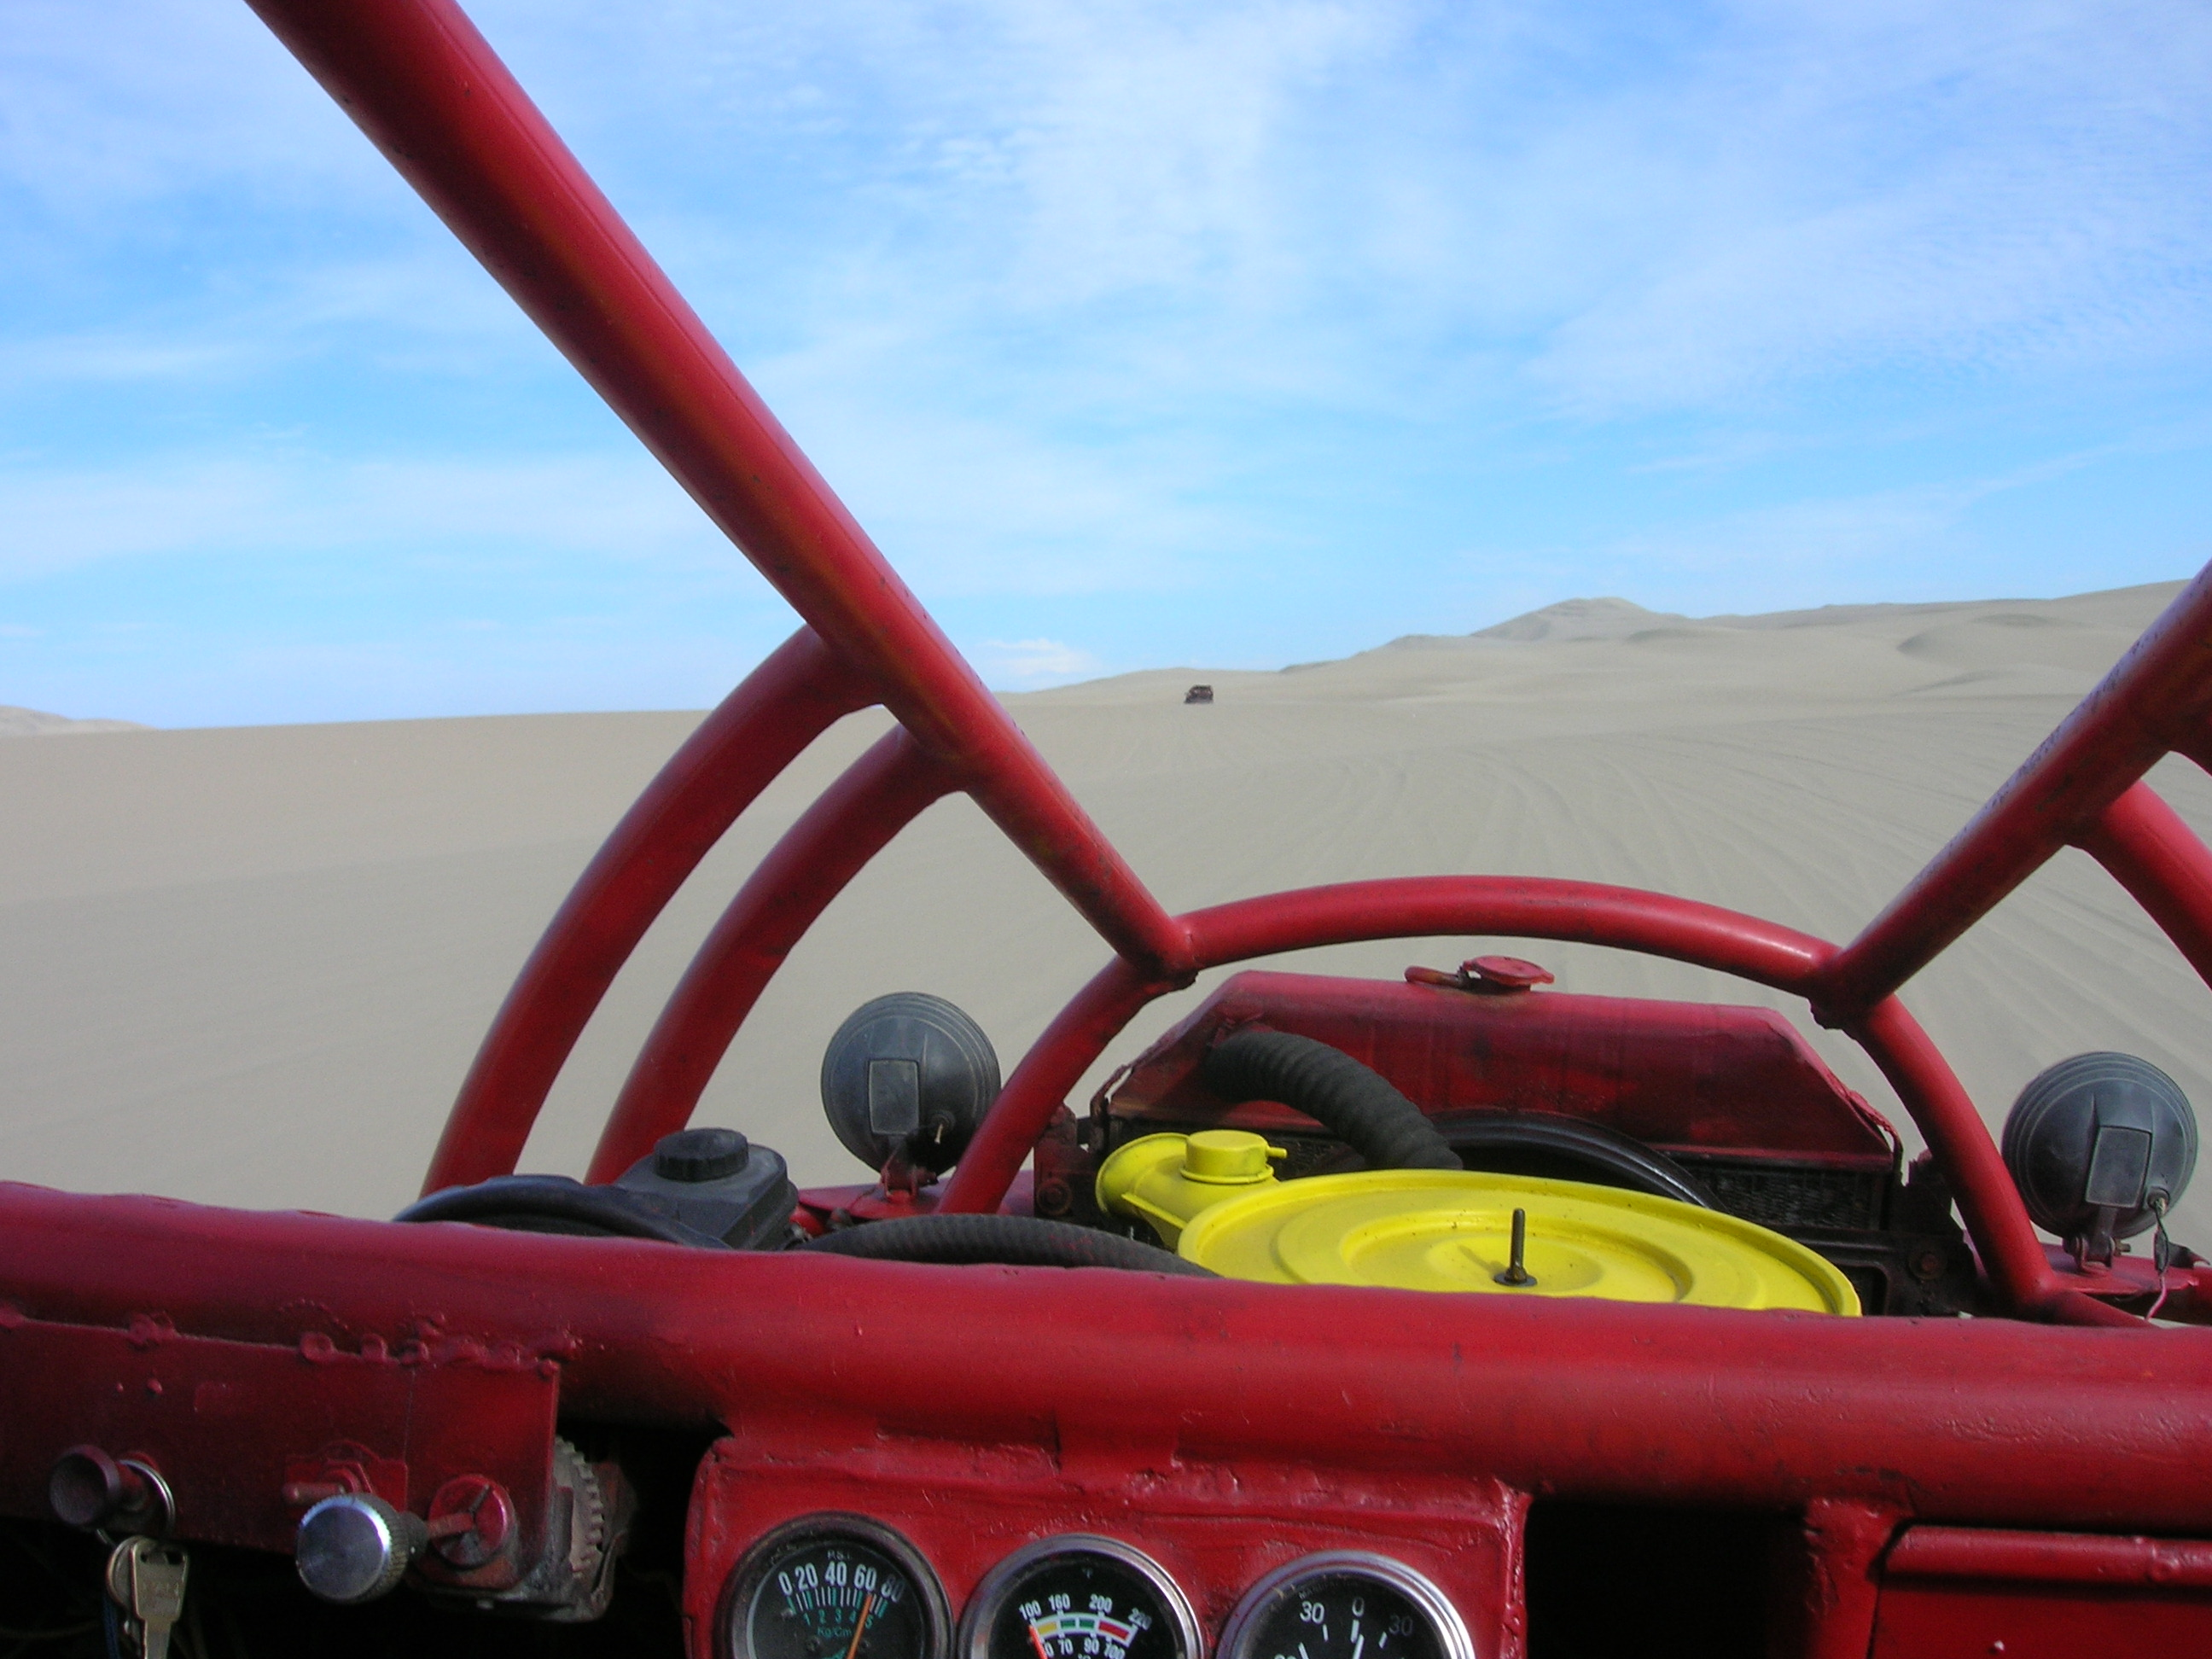 awesome dune buggy ride!